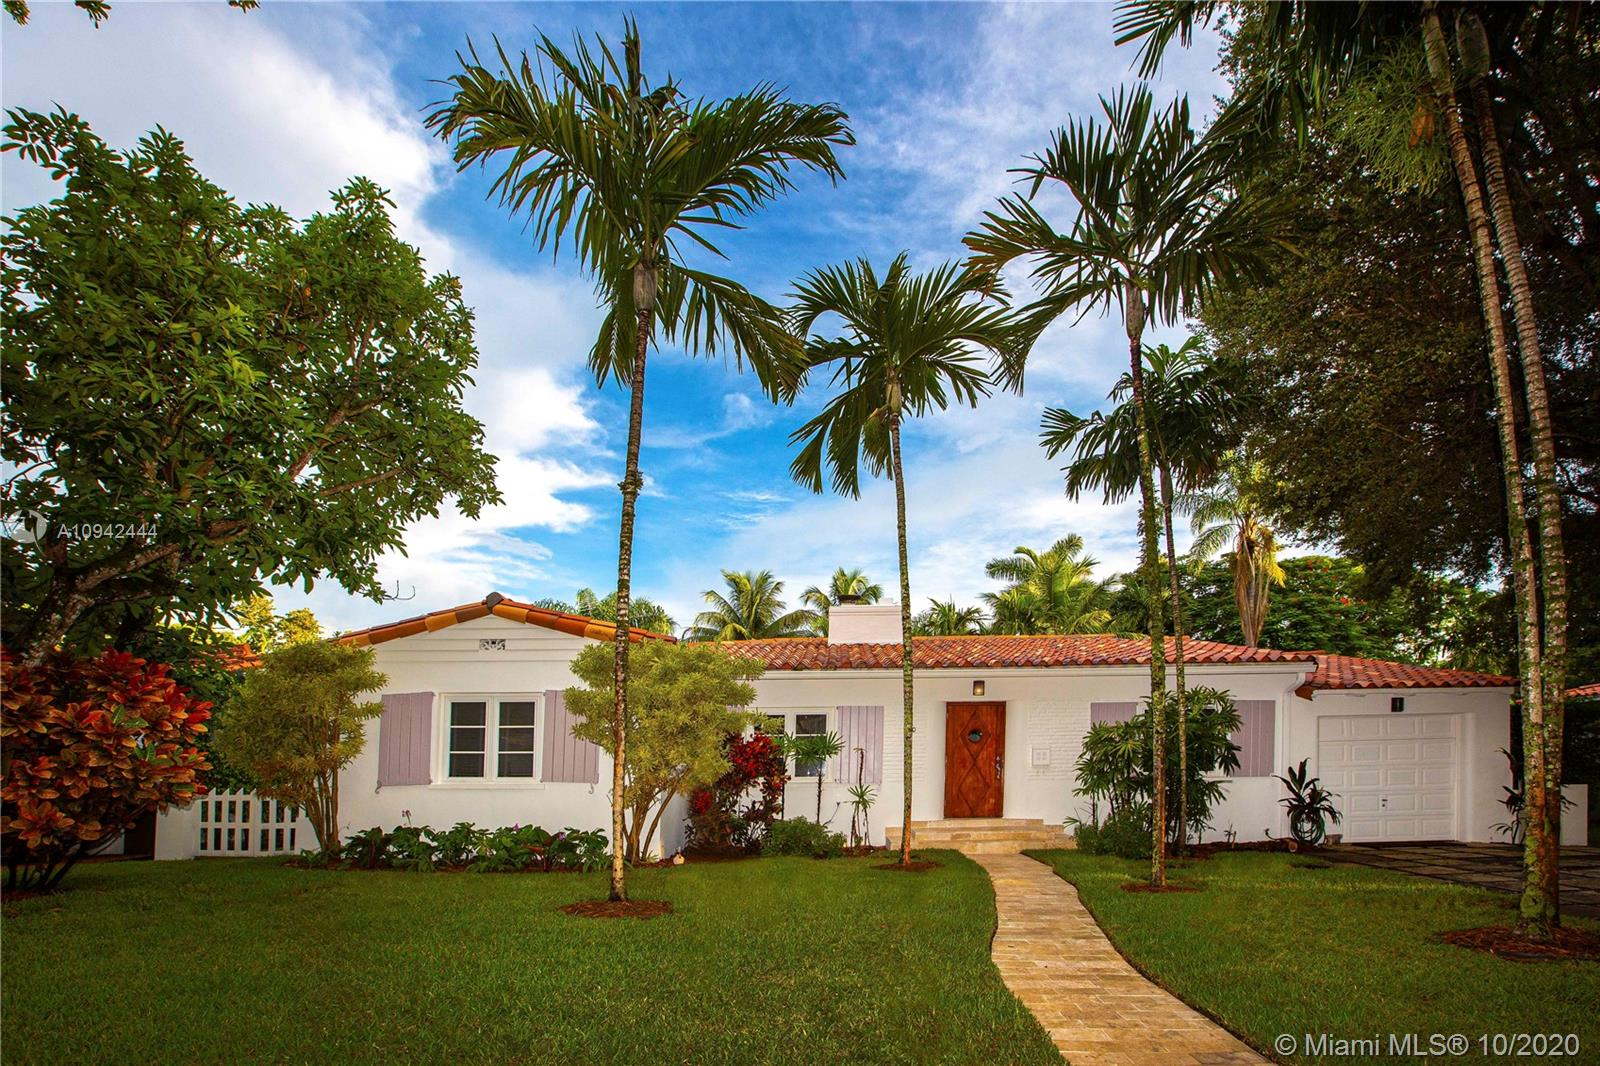 Details for 910 Catalonia Ave, Coral Gables, FL 33134